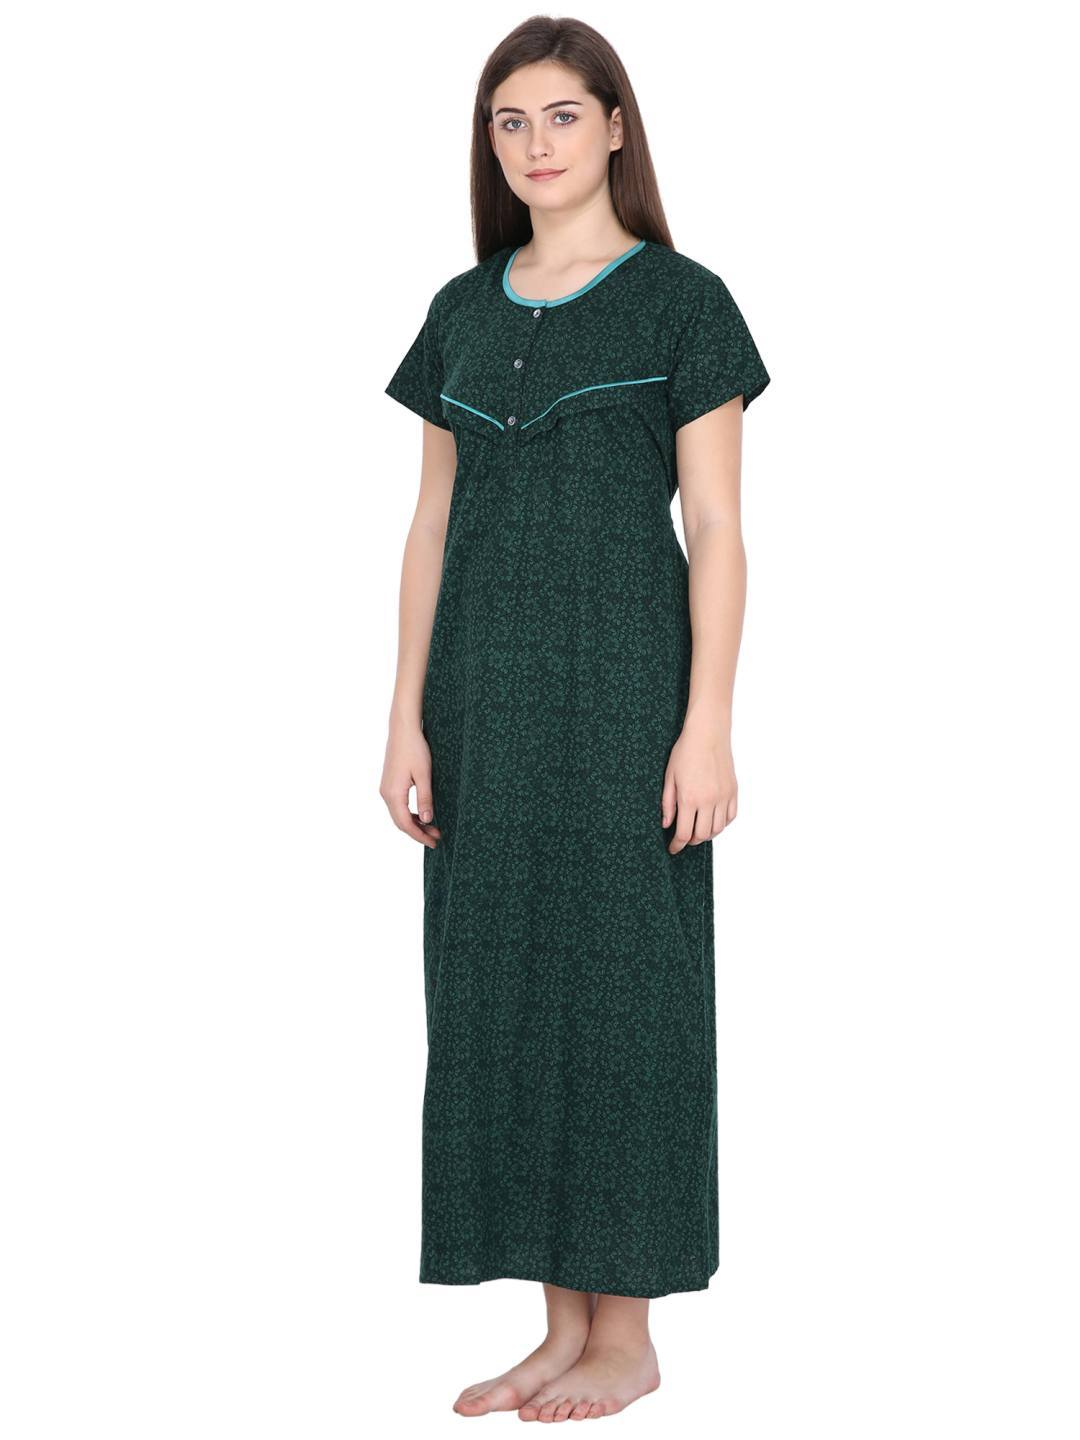 Klamotten Women's Nursing Nightdress C4G30